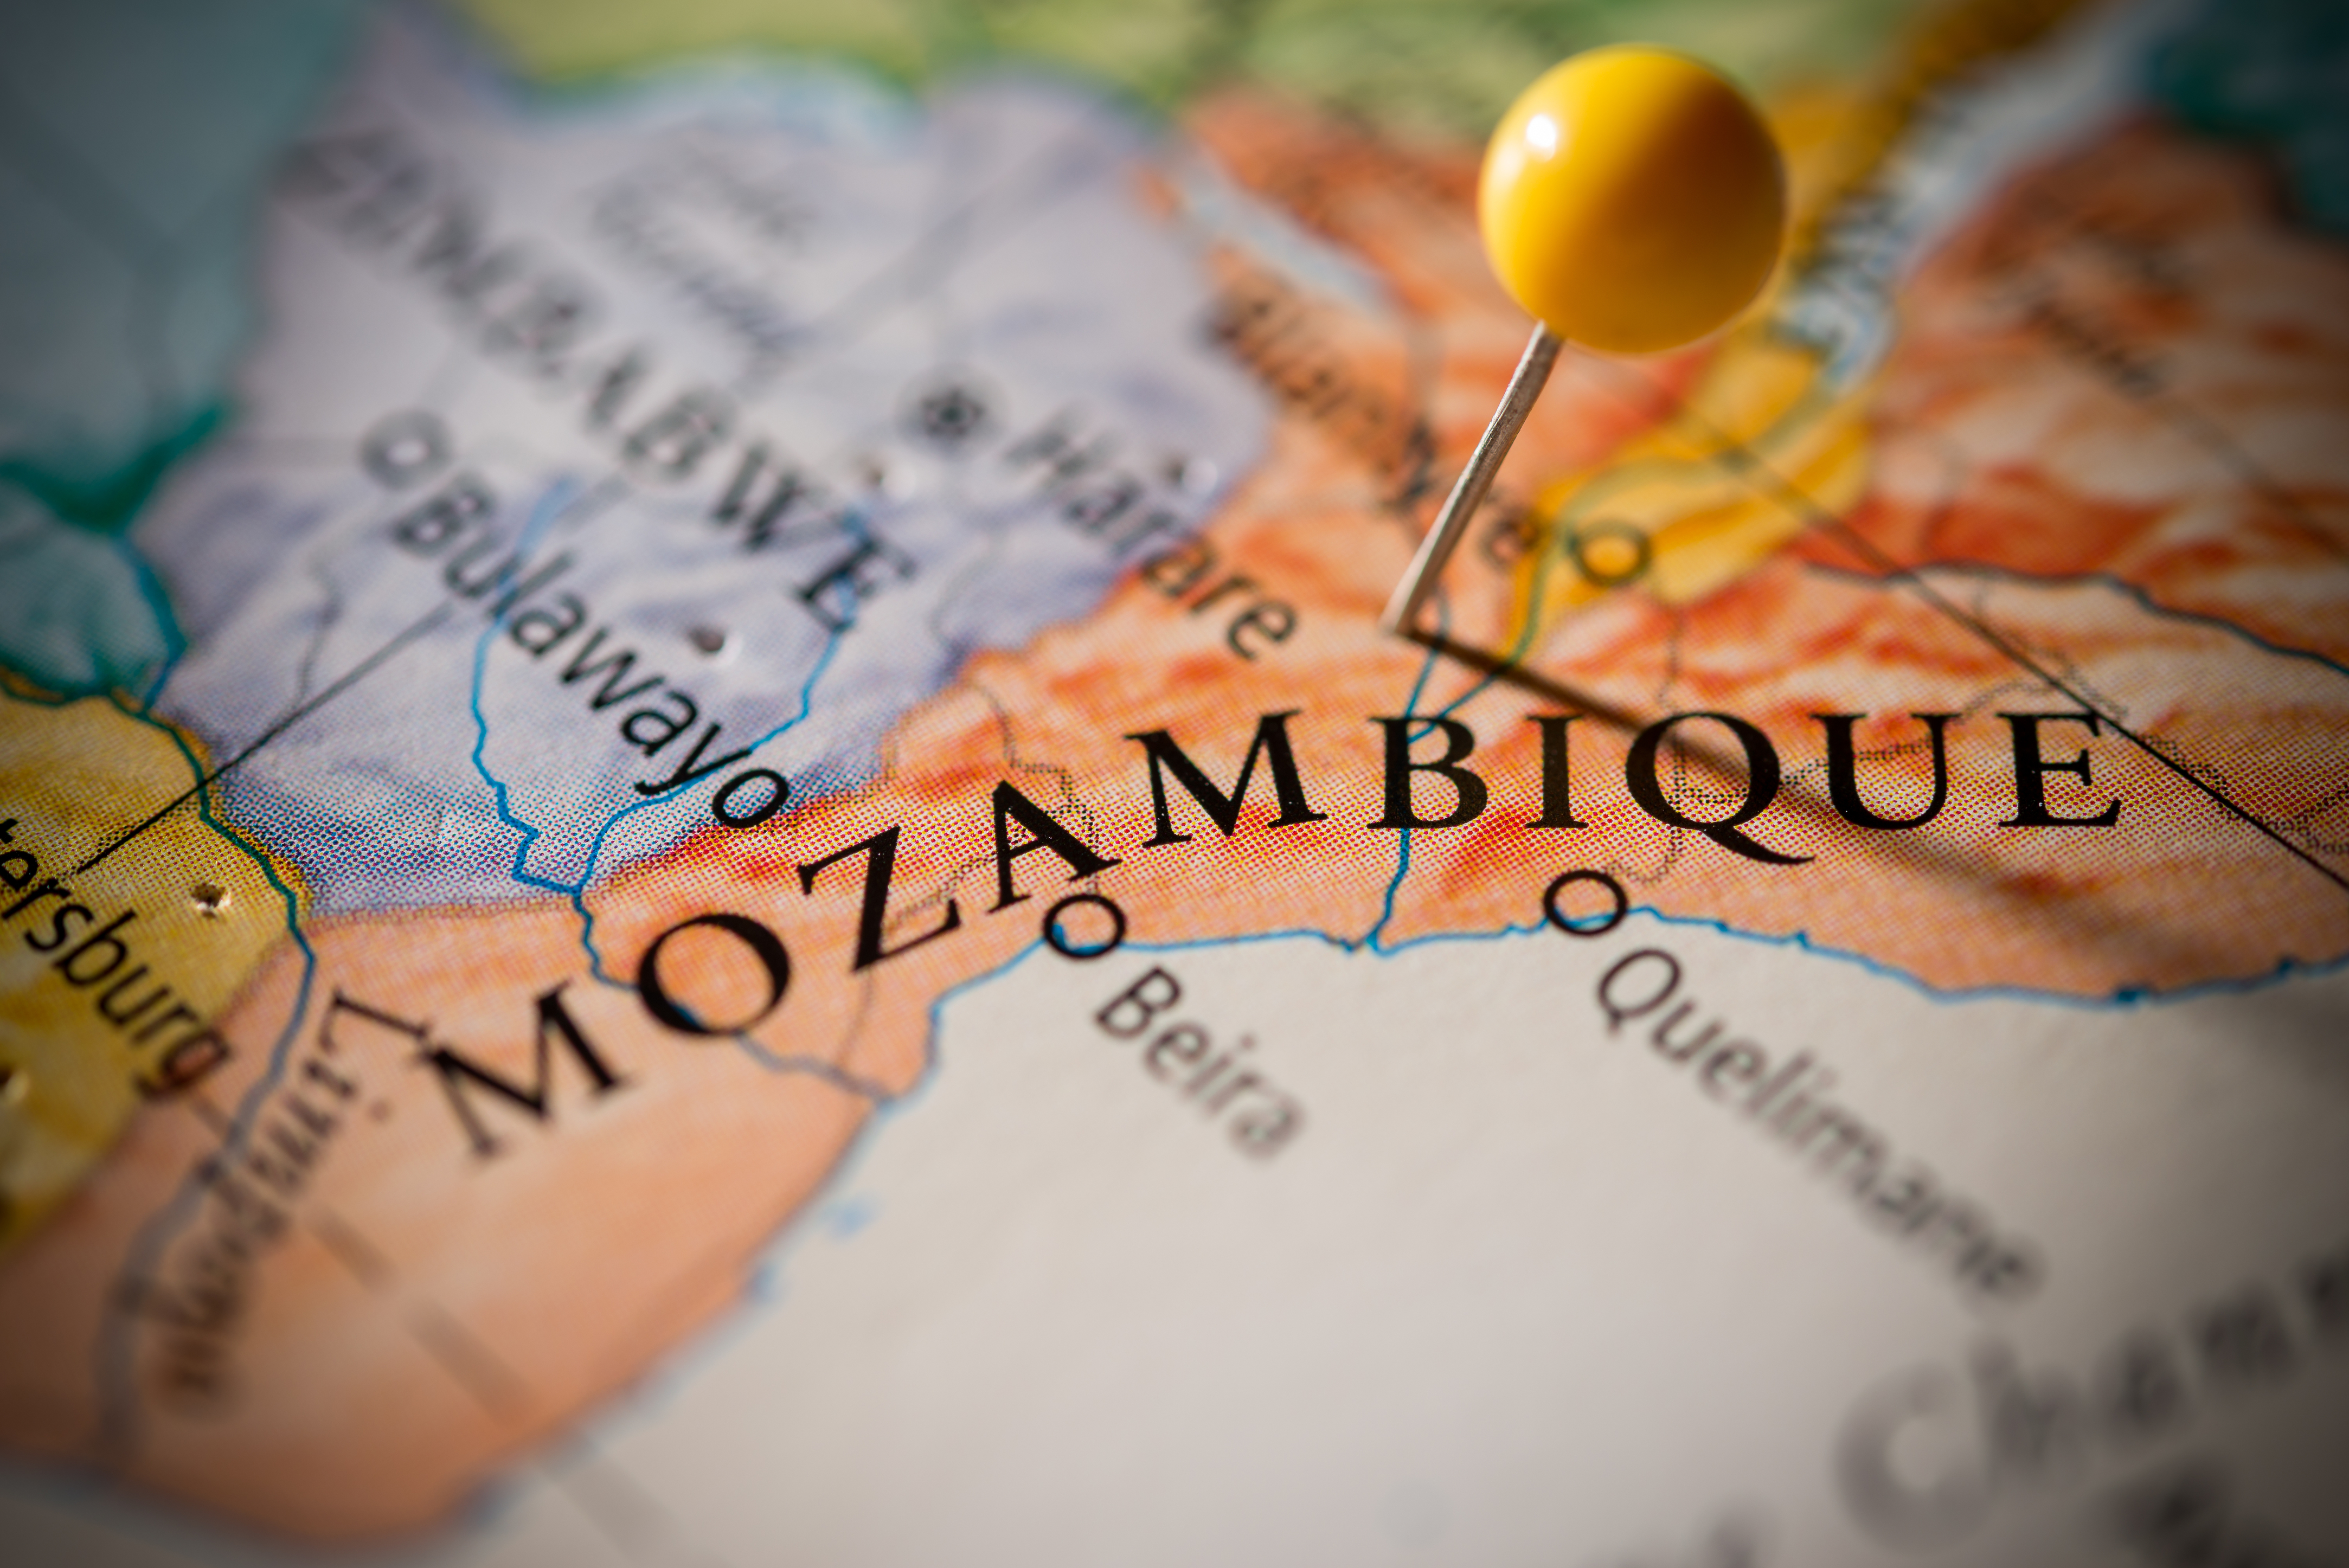 Mozambique court orders release of detained asylum seekers